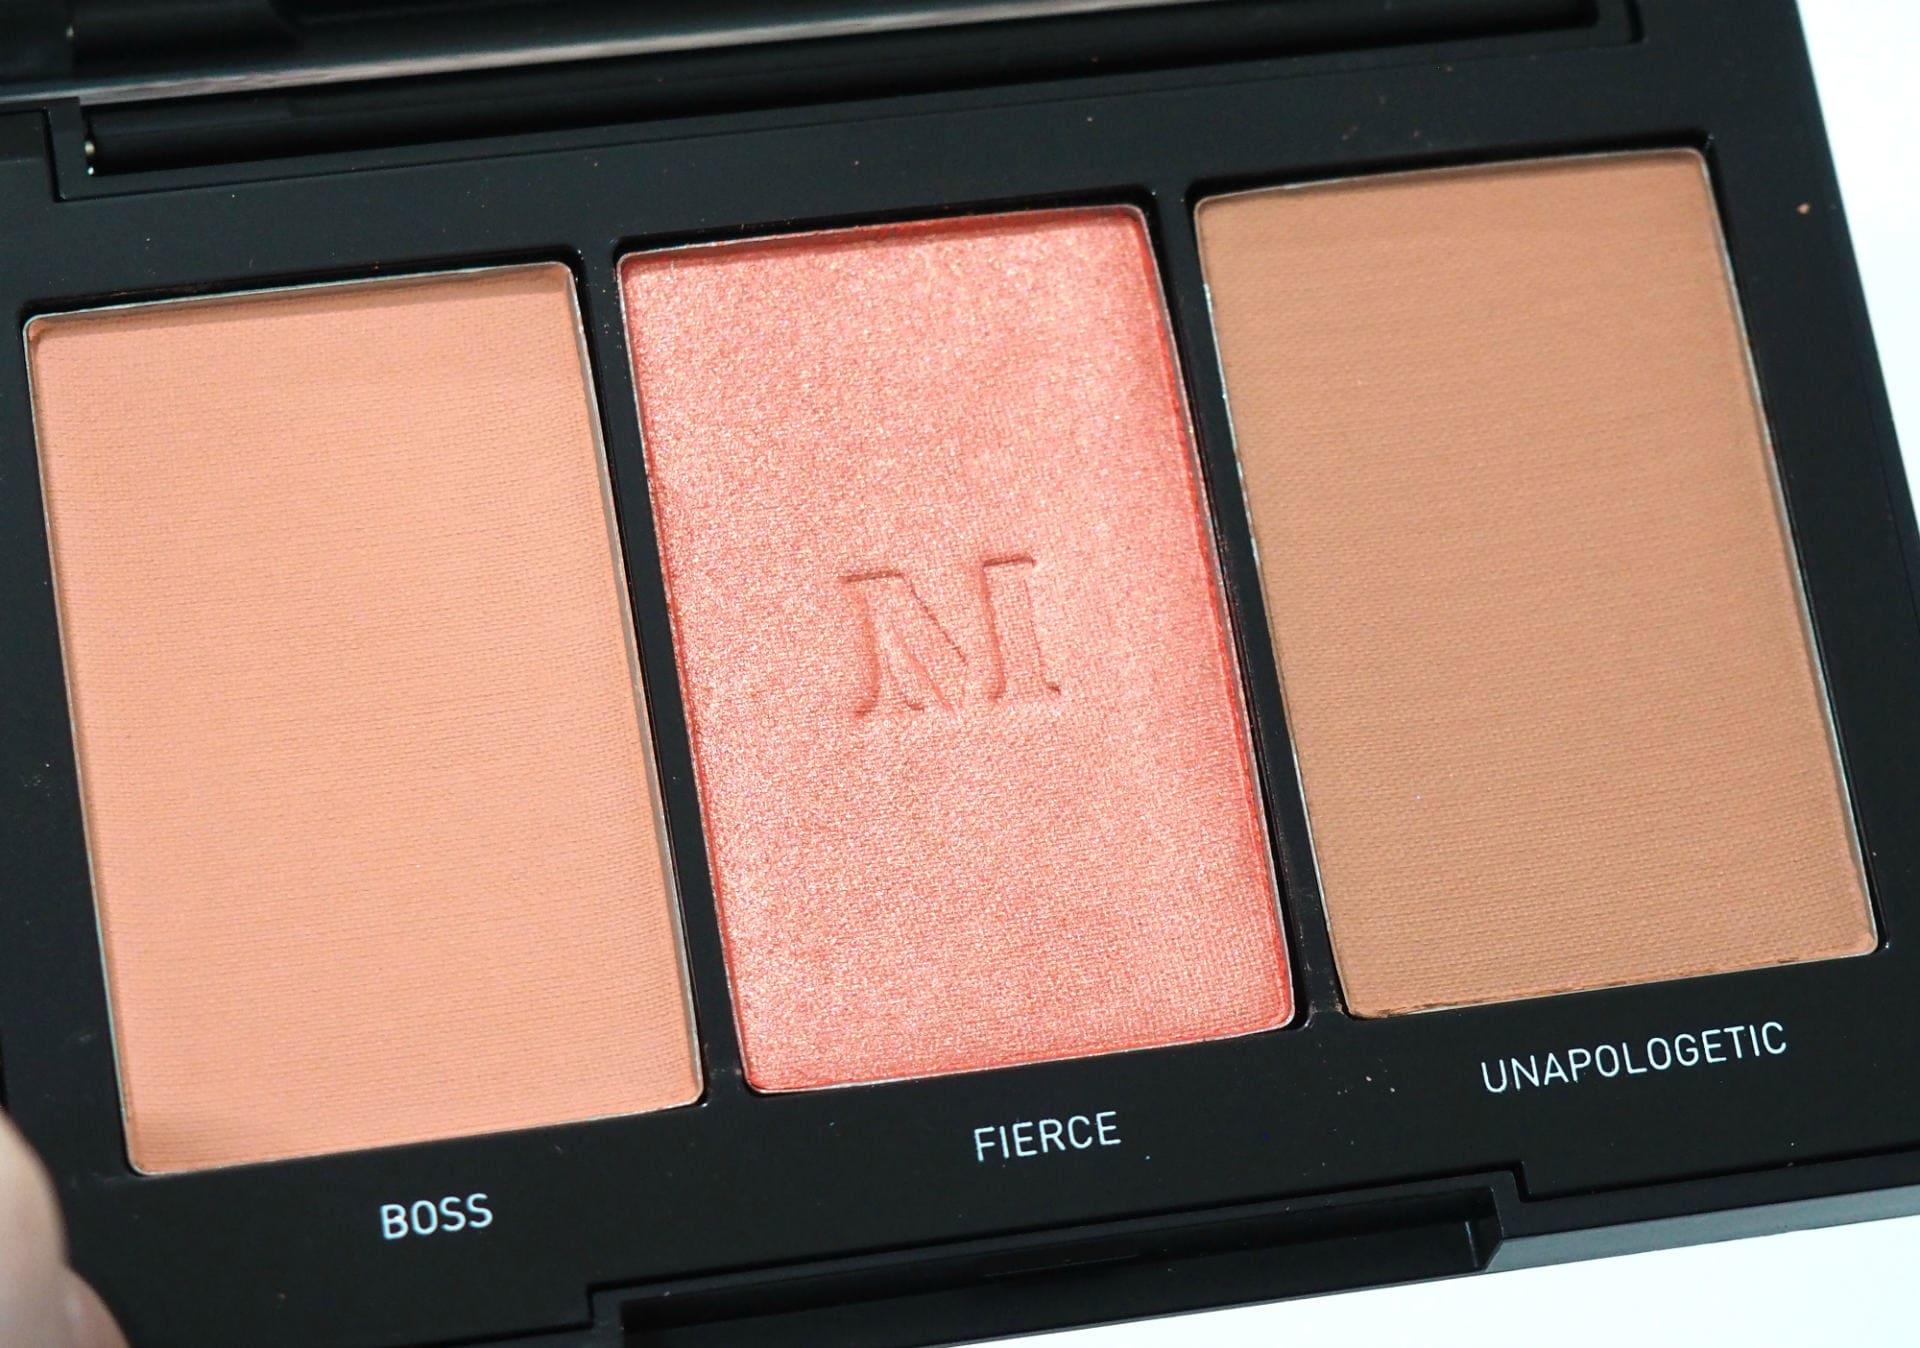 Morphe Blushing Babes Blush Trio in Pop of Coral Review and Swatches